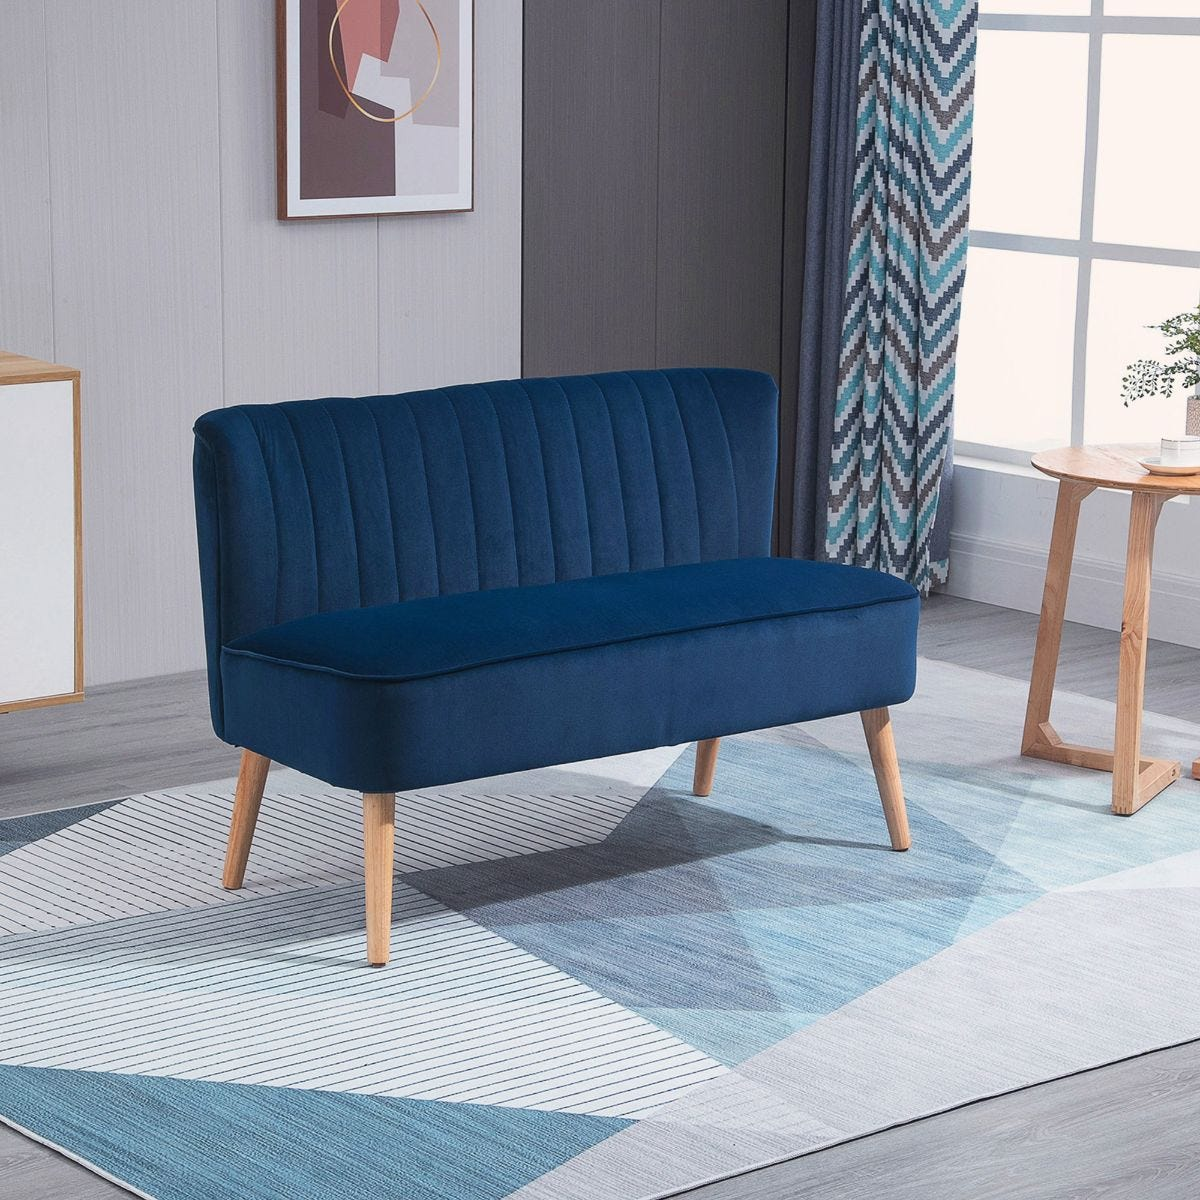 Two Seater Sofa With Wooden Frame Foam Padding High Back Stylish Blue